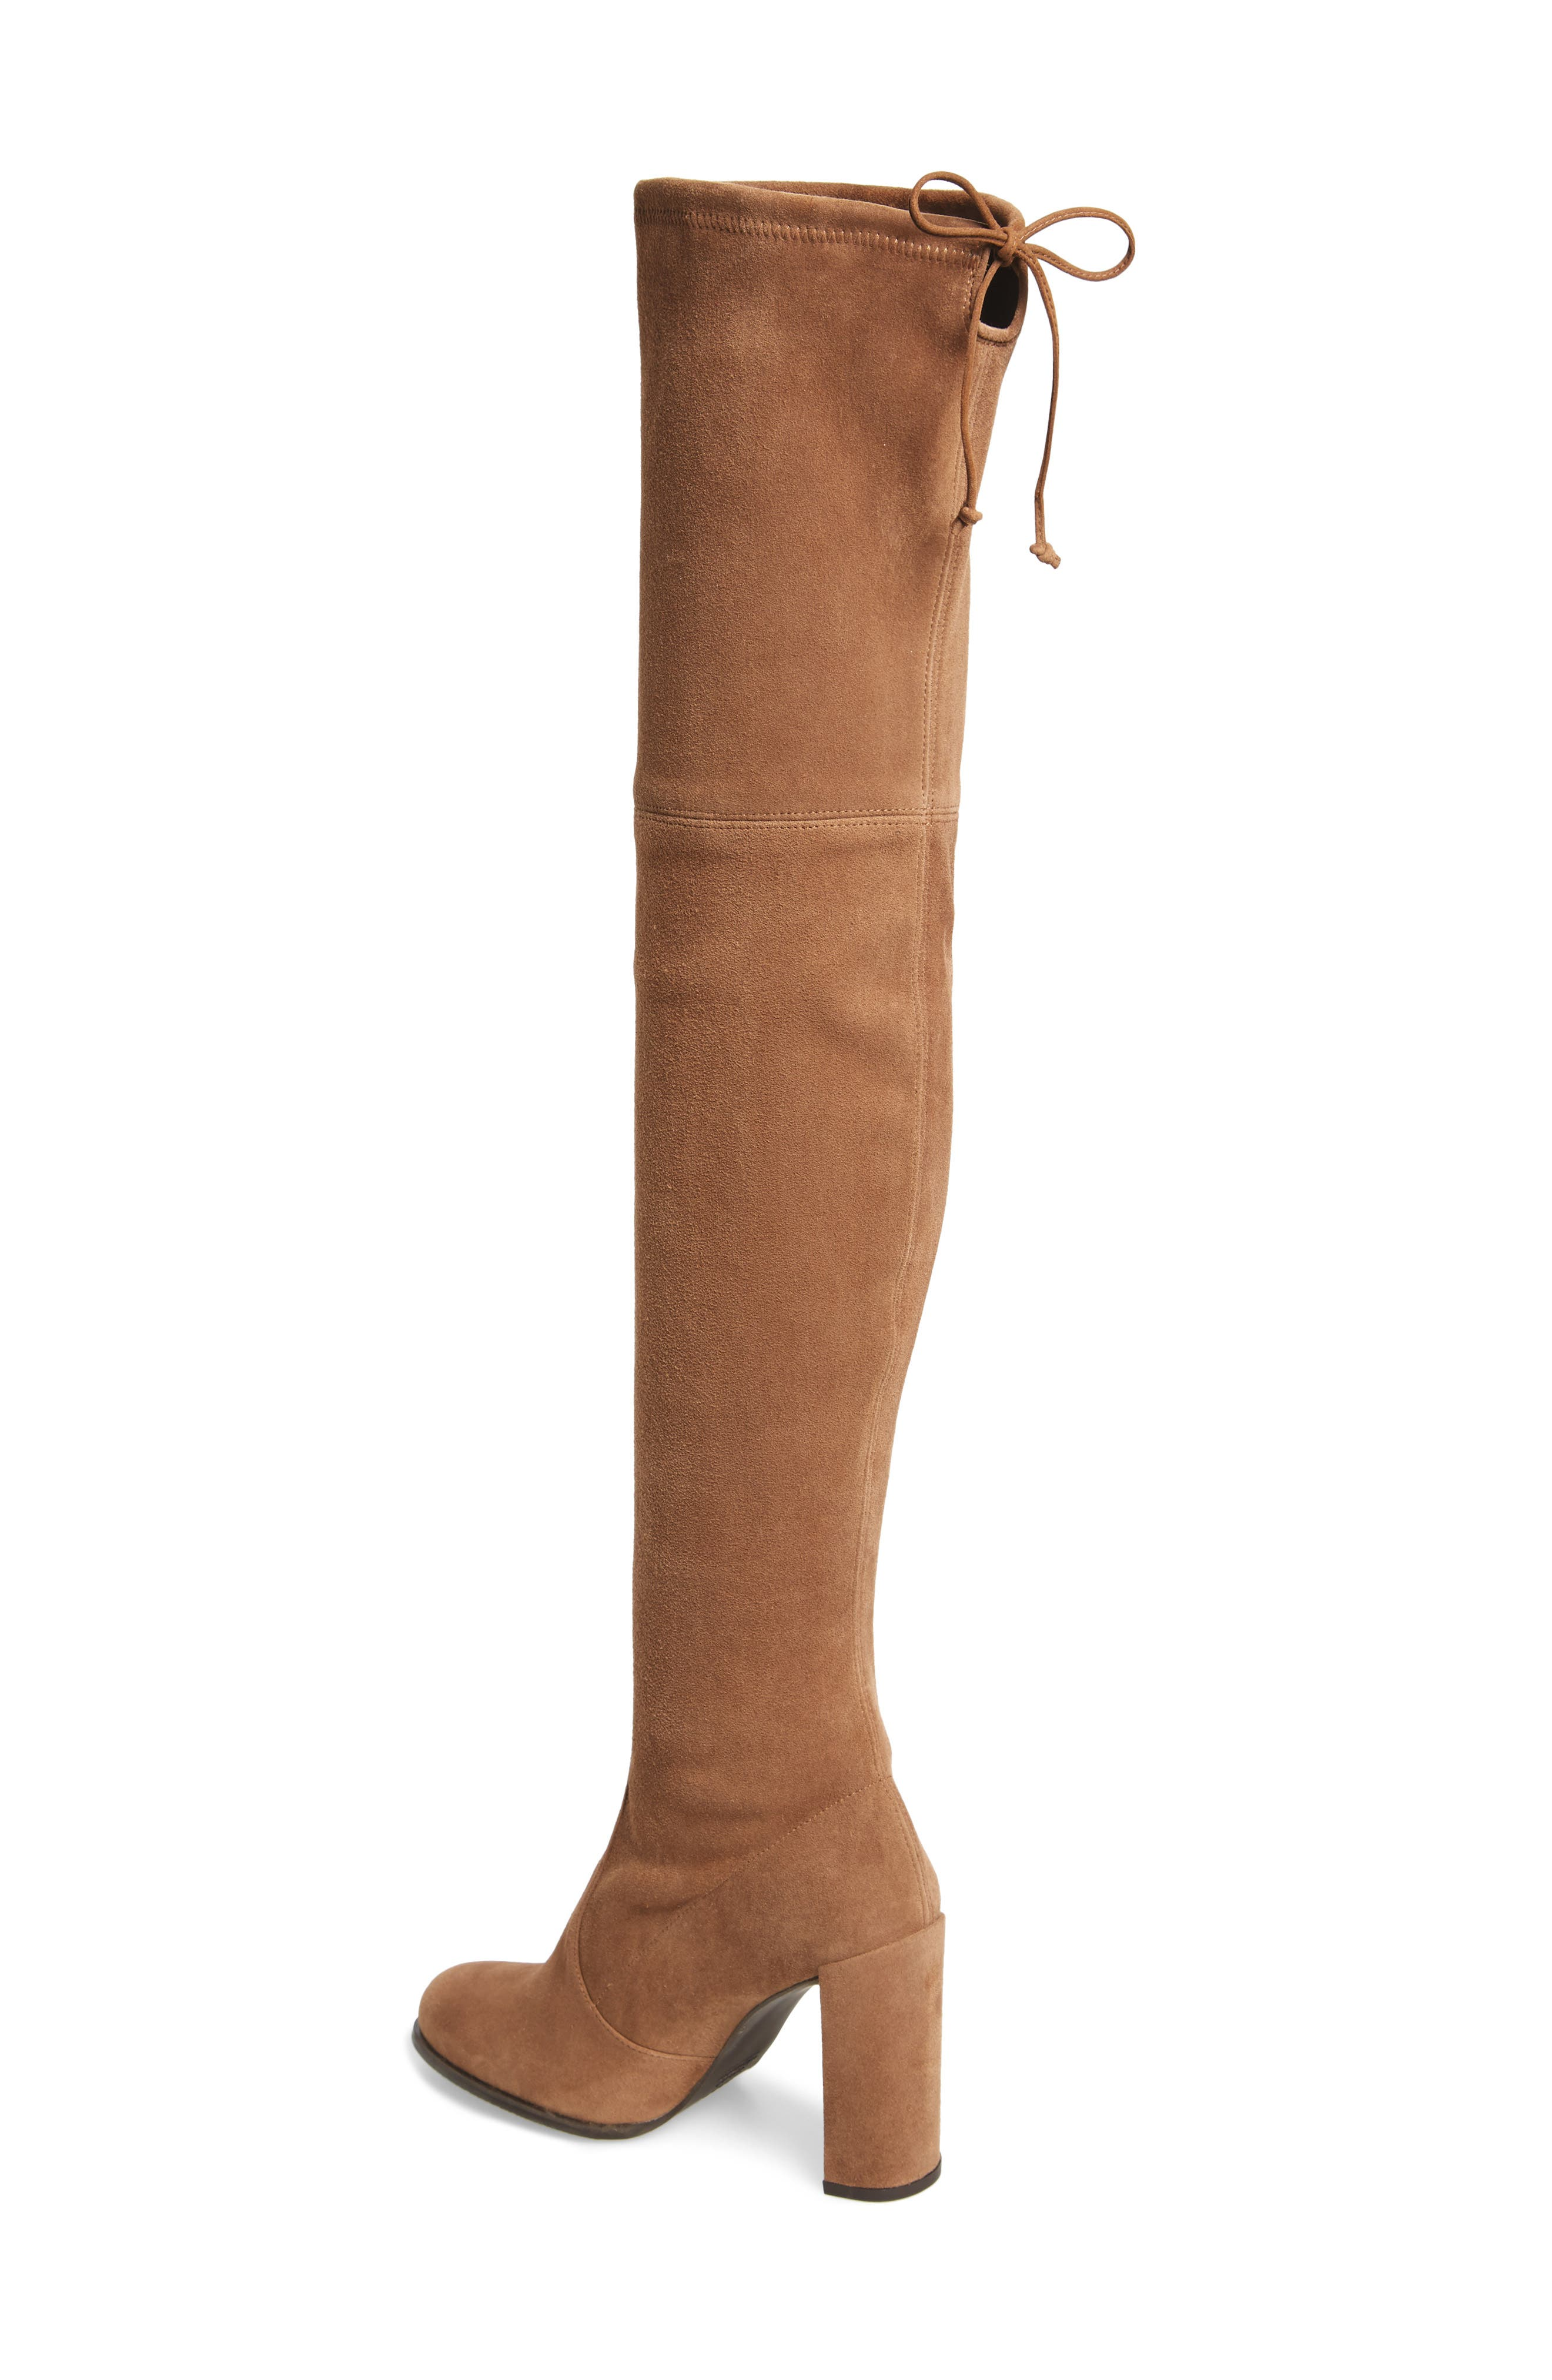 Hiline Over the Knee Boot,                             Alternate thumbnail 19, color,